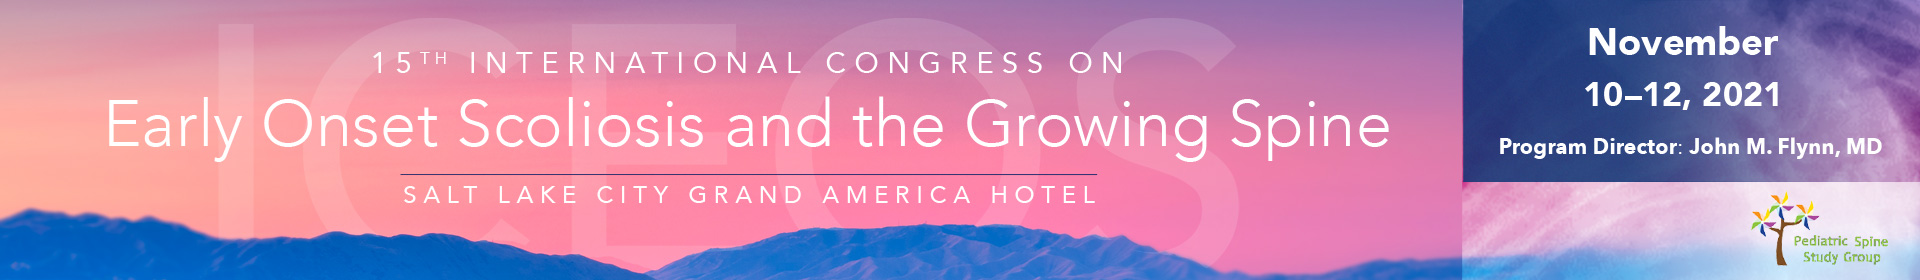 Int'l Congress on Early Onset Scoliosis and the Growing Spine Event Banner